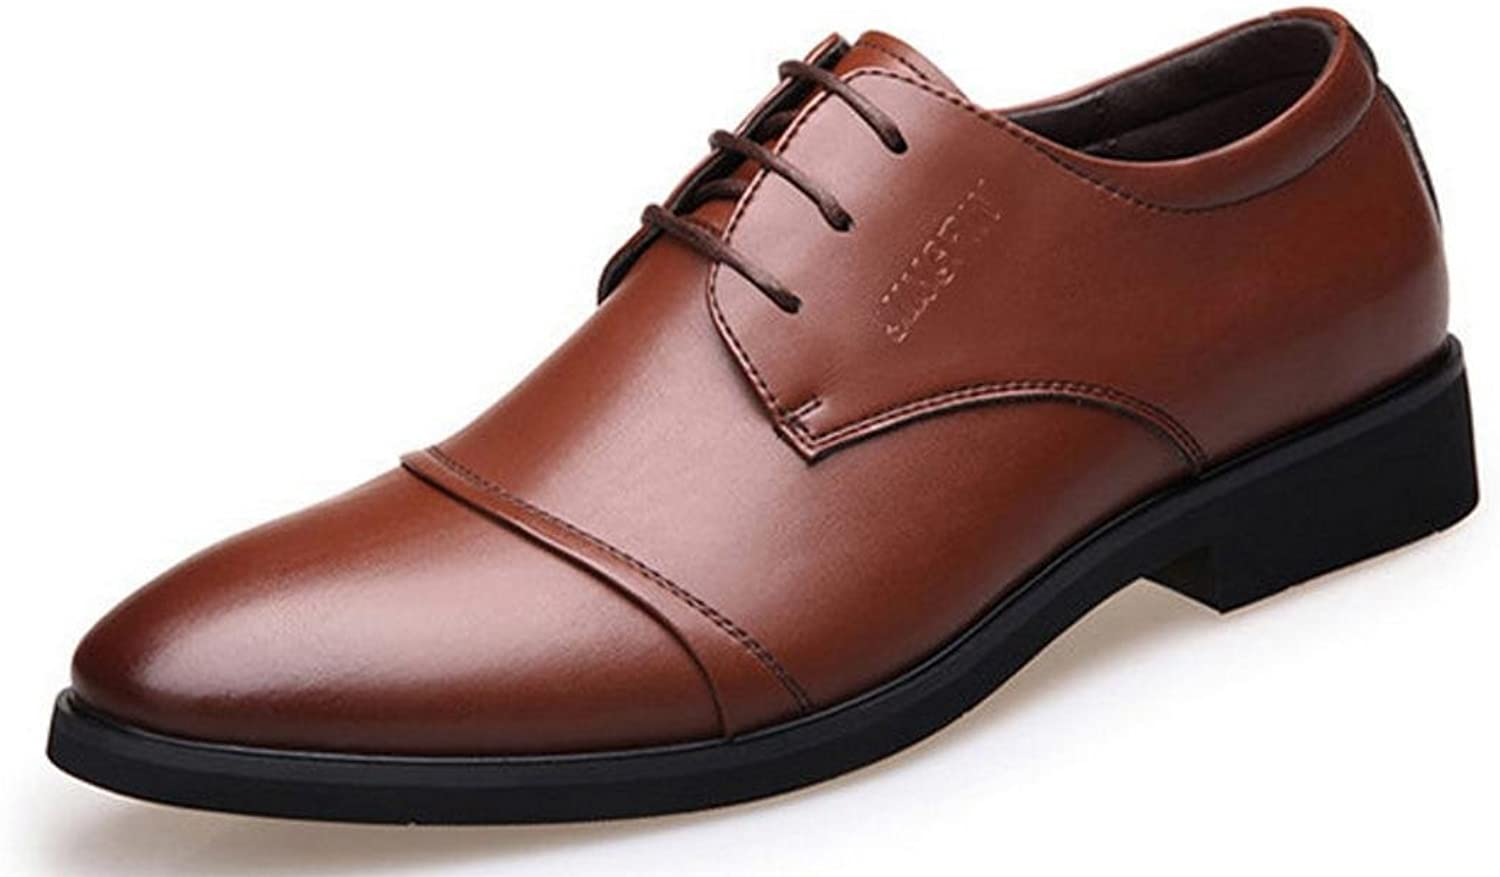 Xwzg Men S Leather Business Dress Casual Shoes Office Lace